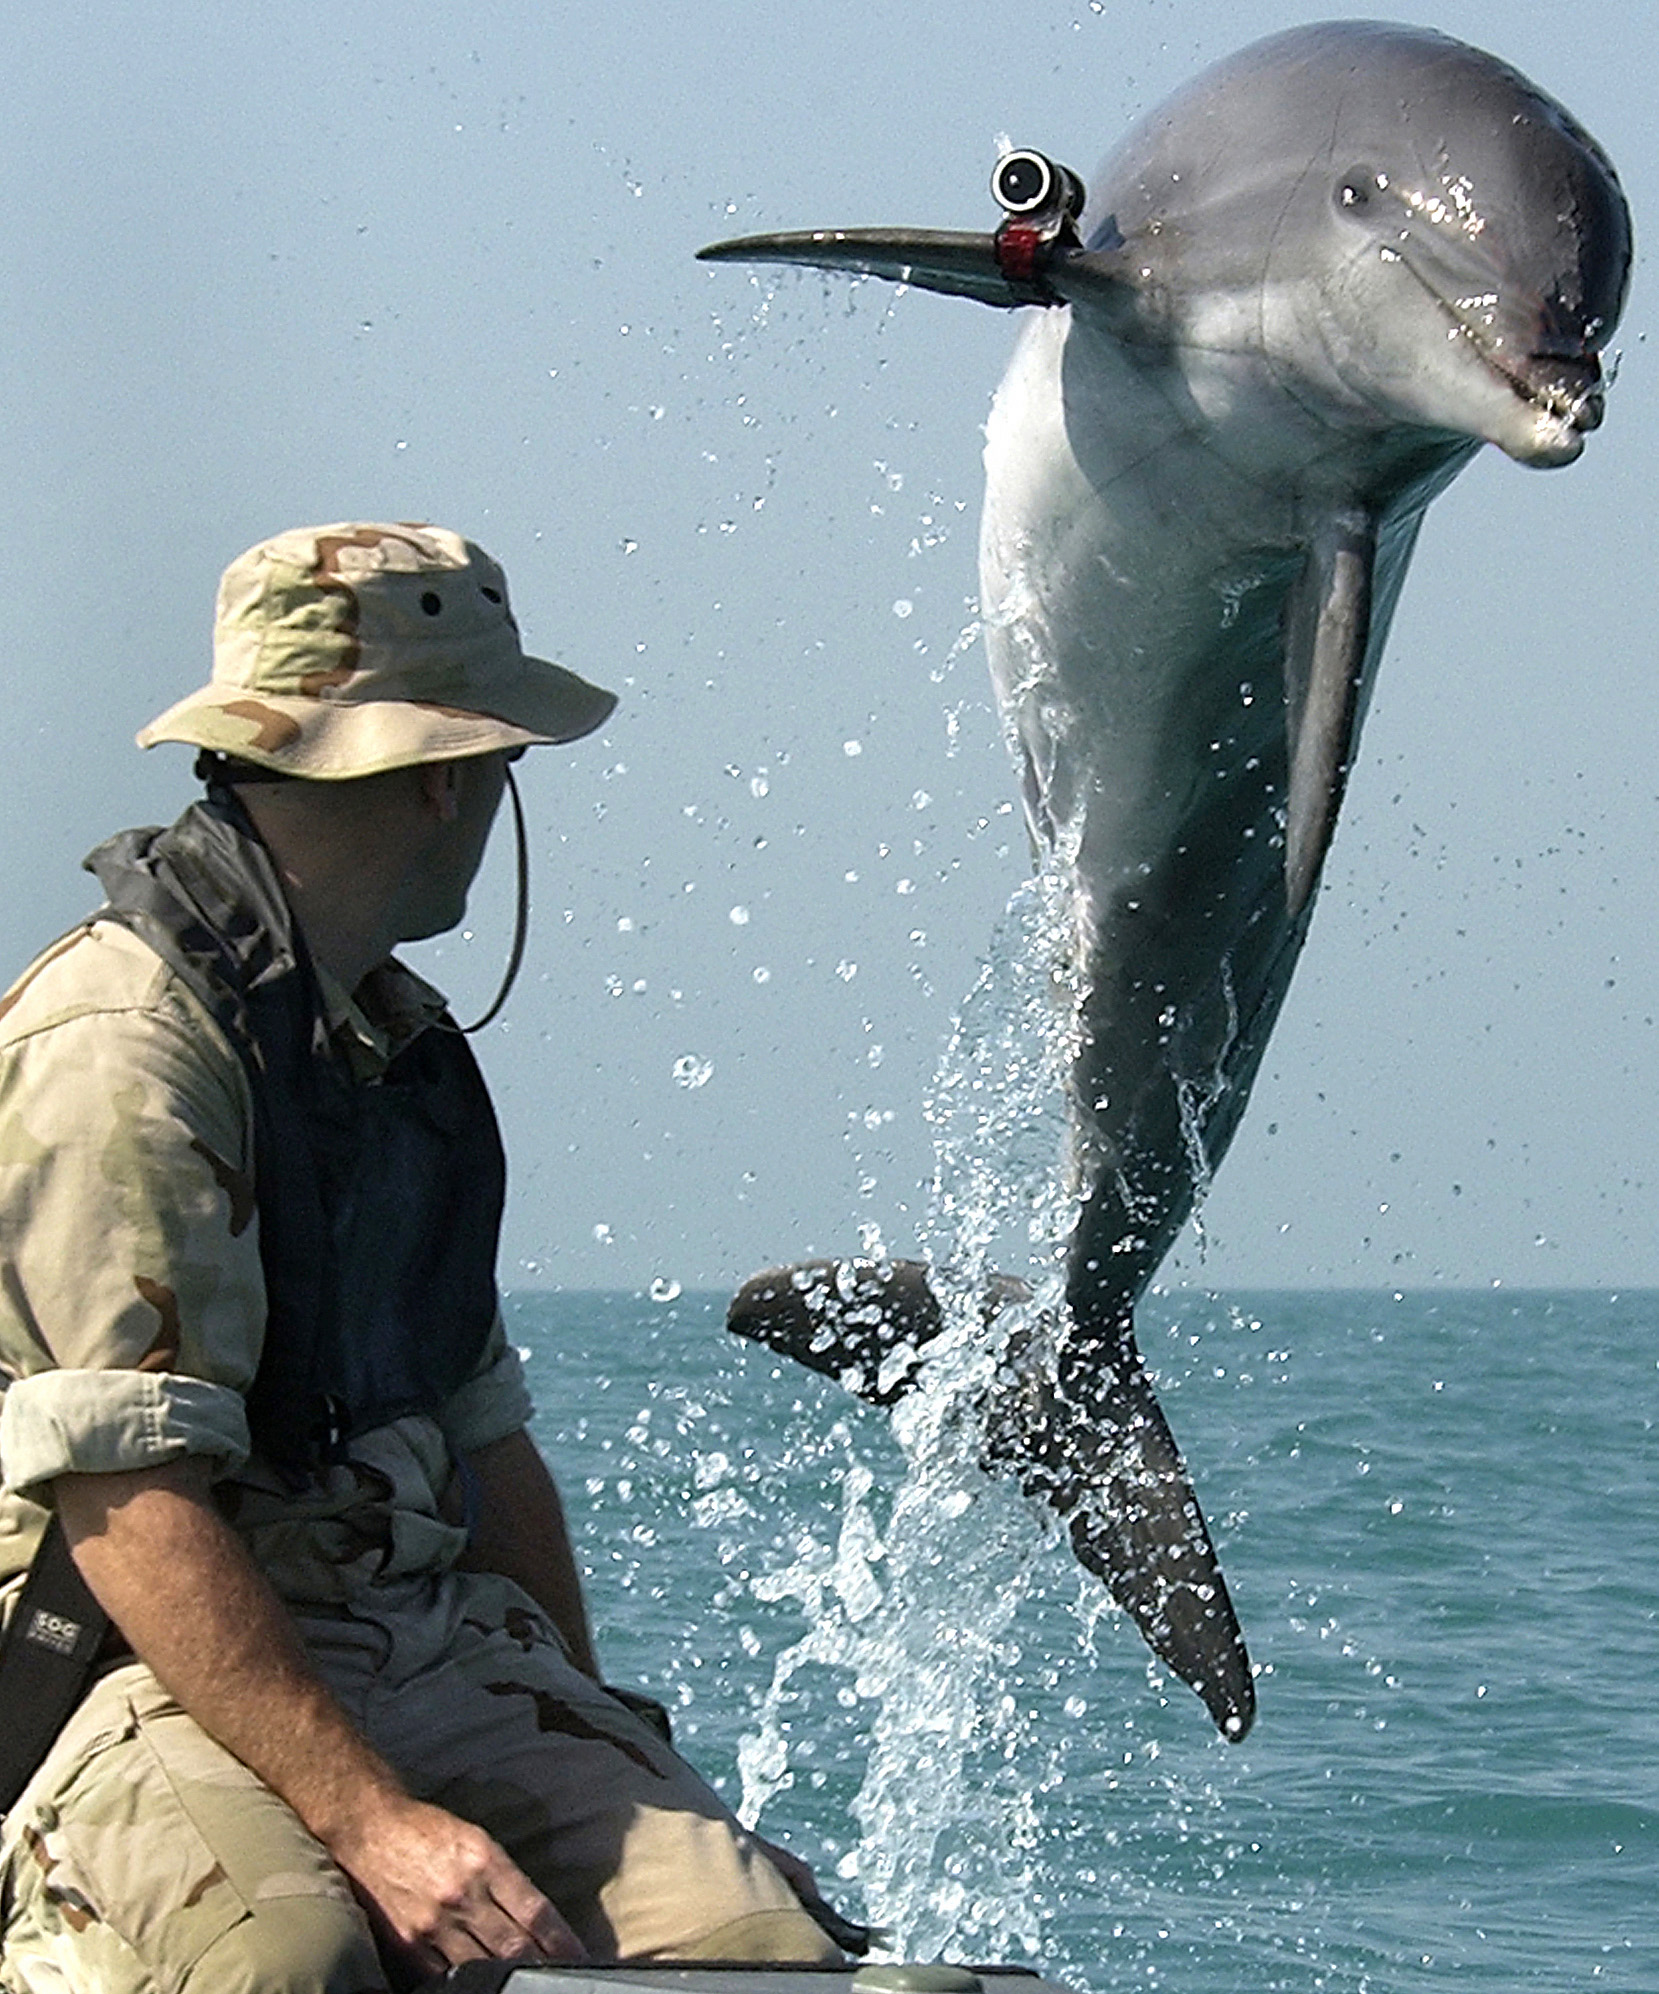 030318-N-5319A-002 Central Command Area of Responsibility (Mar. 18, 2003) -- K-Dog, a Bottle Nose Dolphin belonging to Commander Task Unit (CTU) 55.4.3, leaps out of the water in front Sgt. Andrew Garrett while training near the USS Gunston Hall (LSD 44) in the Arabian Gulf. Attached to the dolphinÕs pectoral fin is a ÒpingerÓ device that allows the handler to keep track of the dolphin when out of sight. CTU-55.4.3 is a multi-national team consisting of Naval Special Clearance Team-One, Fleet Diving Unit Three from the United Kingdom, Clearance Dive Team from Australia, and Explosive Ordnance Disposal Mobile Units Six and Eight (EODMU-6 and -8).  These units are conducting deep/shallow water mine countermeasure operations to clear shipping lanes for humanitarian relief.  CTU-55.4.3 and USS Gunston Hall are currently forward deployed conducting missions in support of Operation Iraqi Freedom, the multinational coalition effort to liberate the Iraqi people, eliminate Iraq's weapons of mass destruction, and end the regime of Saddam Hussein.  U.S. Navy photo by PhotographerÕs Mate 1st Class Brien Aho.  (RELEASED)